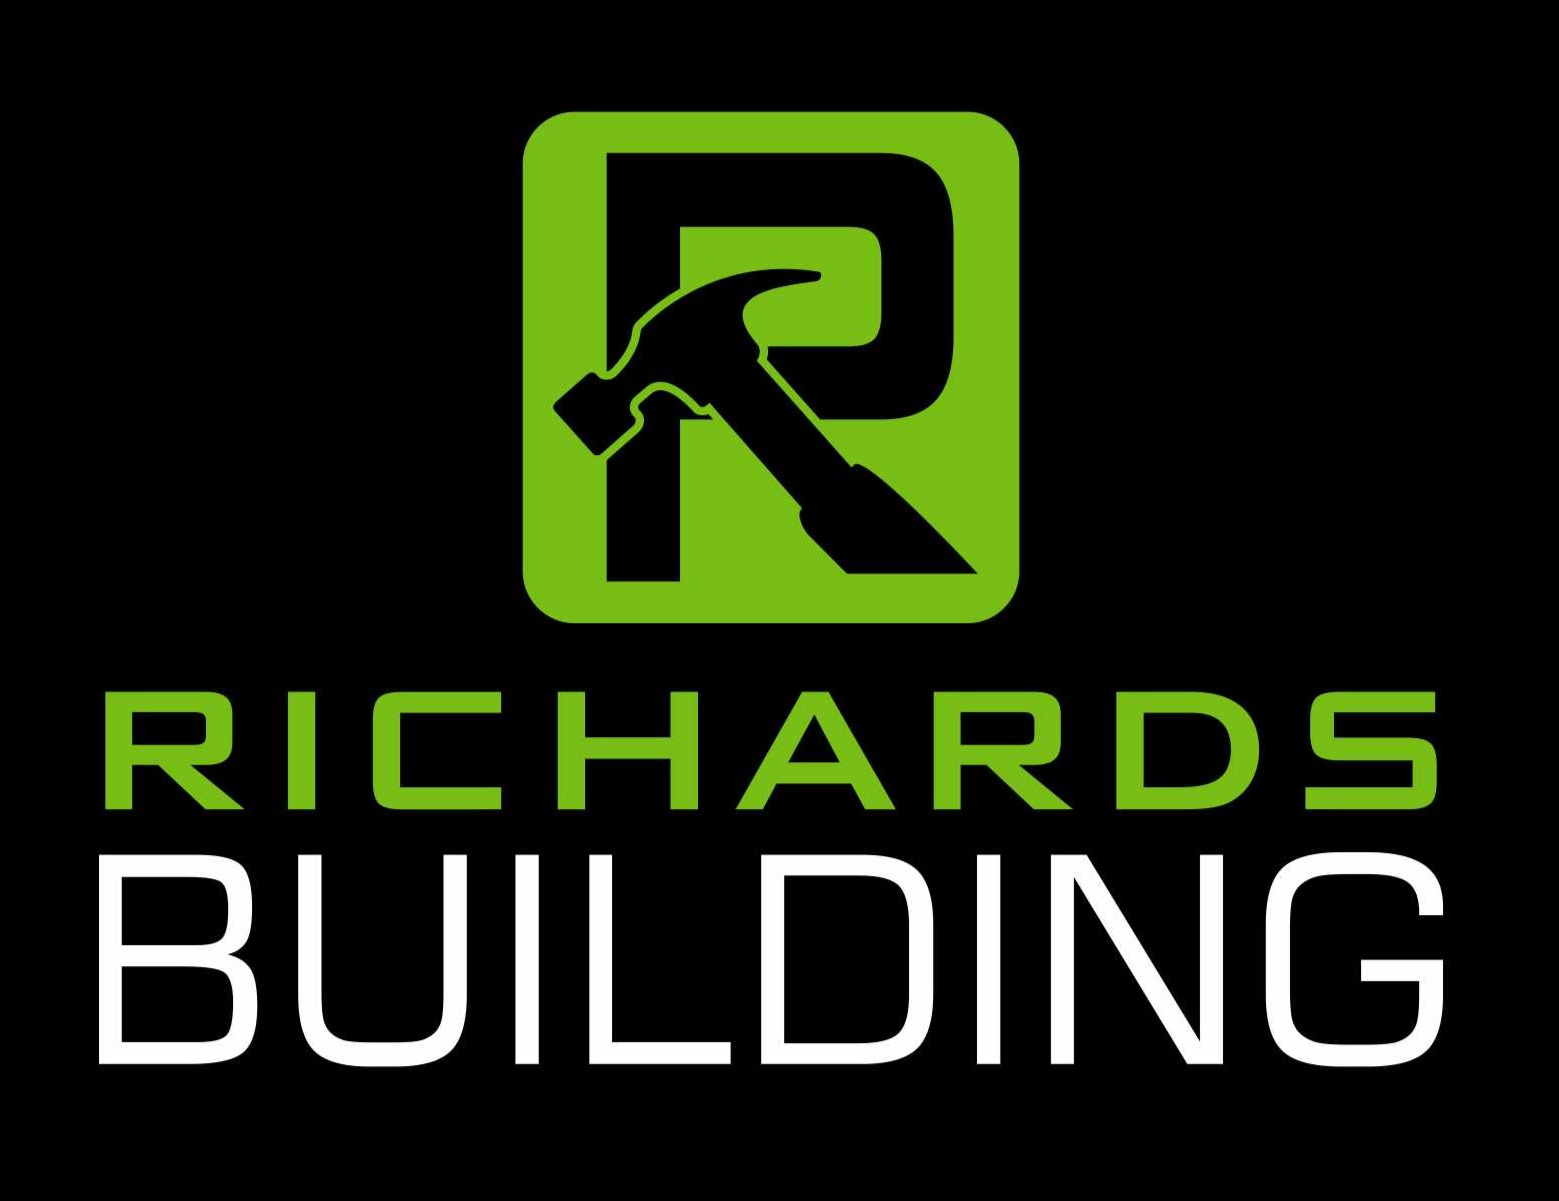 [Richards Building]